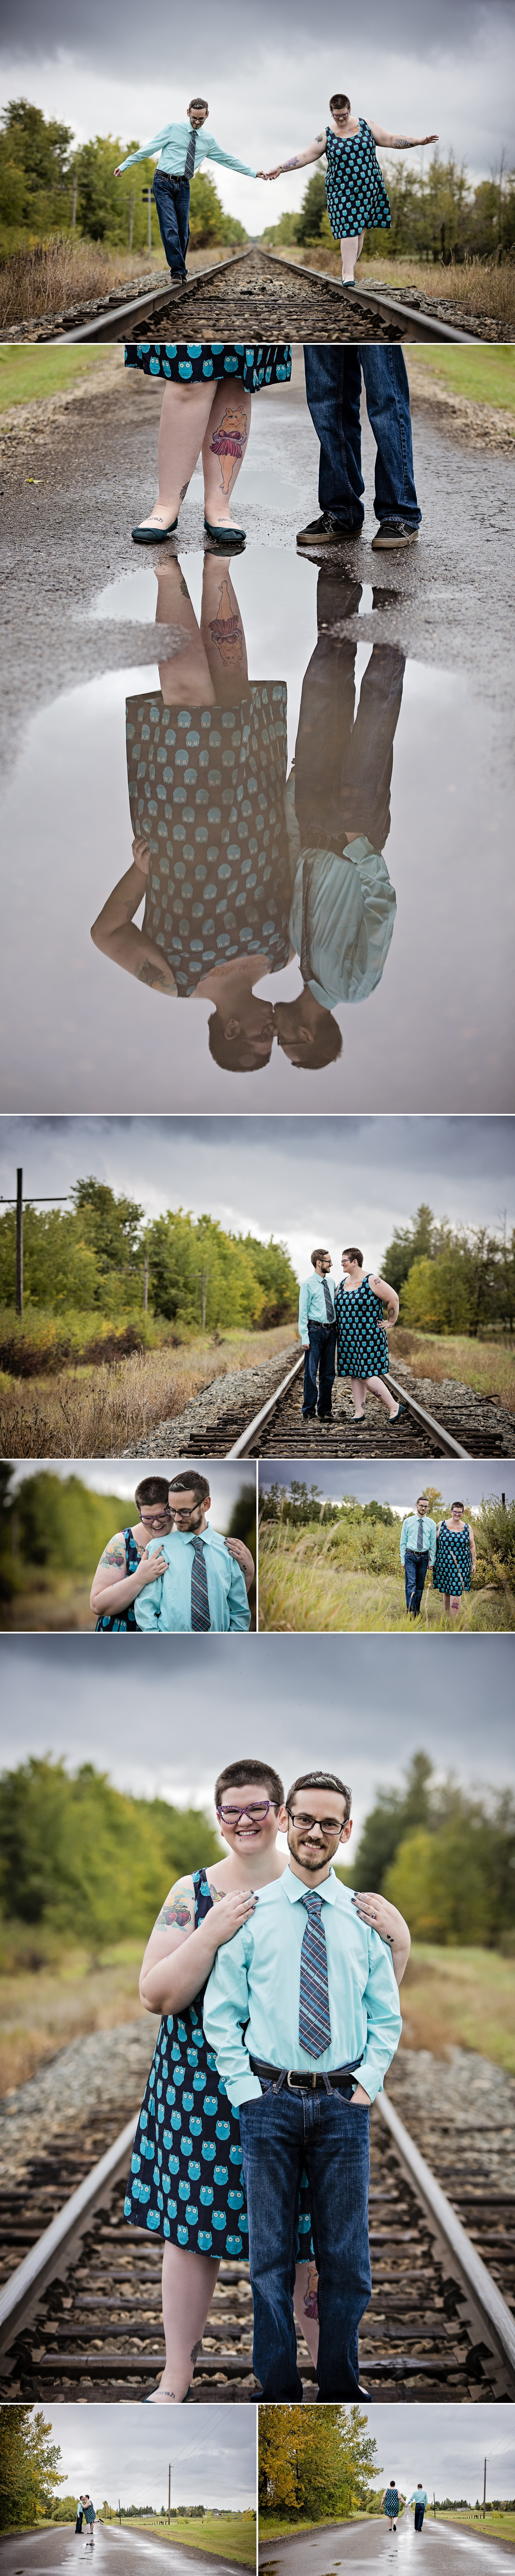 Couple Lifestyle Photography by Friday Design + Photography from Edmonton, Alberta, Canada.